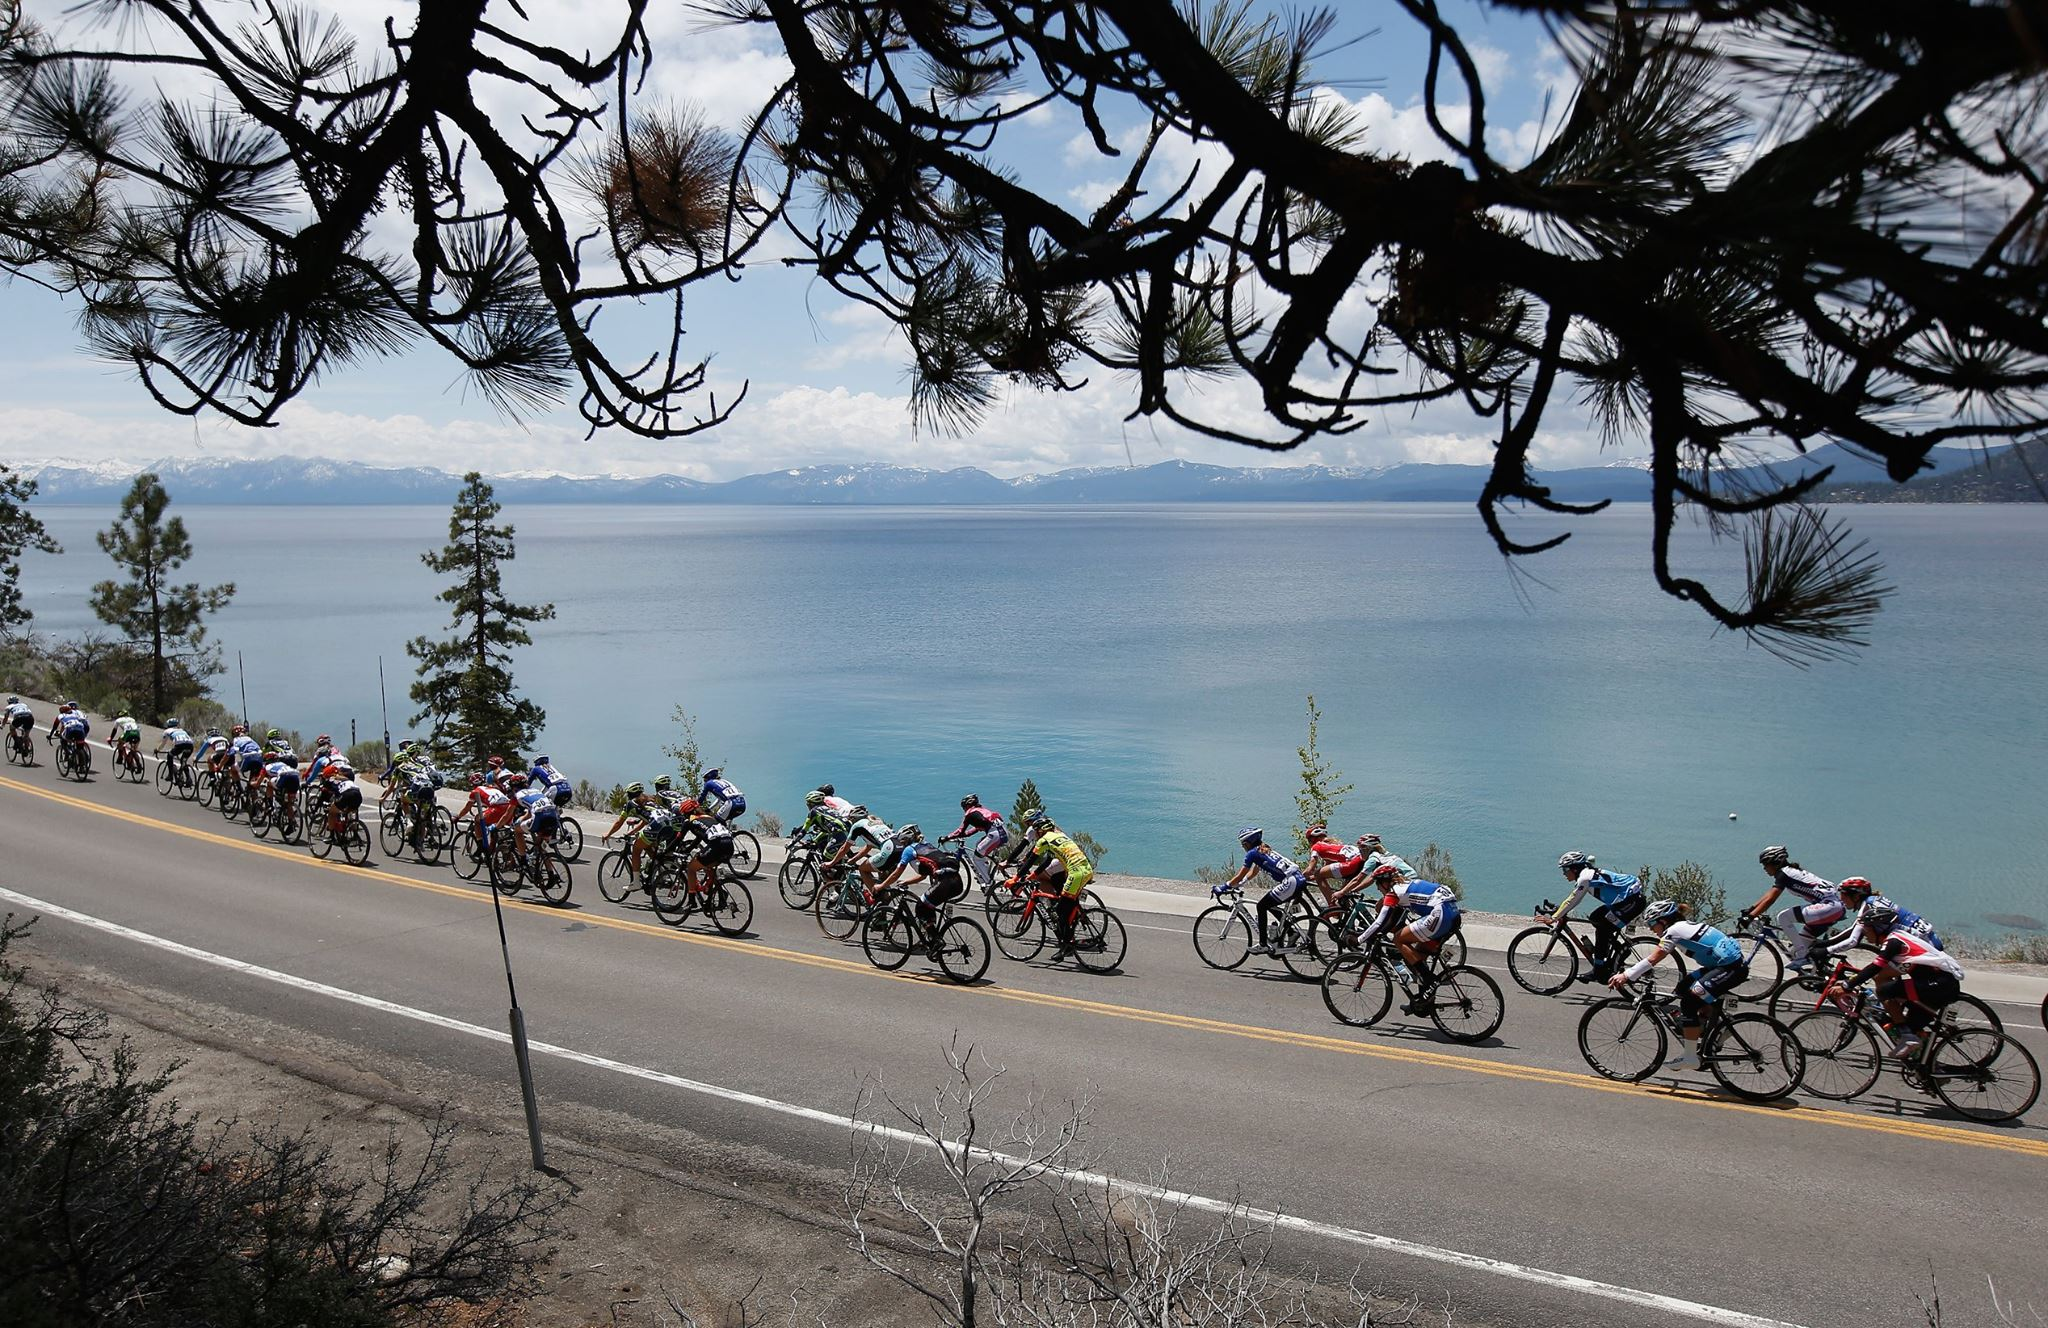 Scenery from the Amgen Tour of California bike race. Photo: Amgen Tour of California Facebook